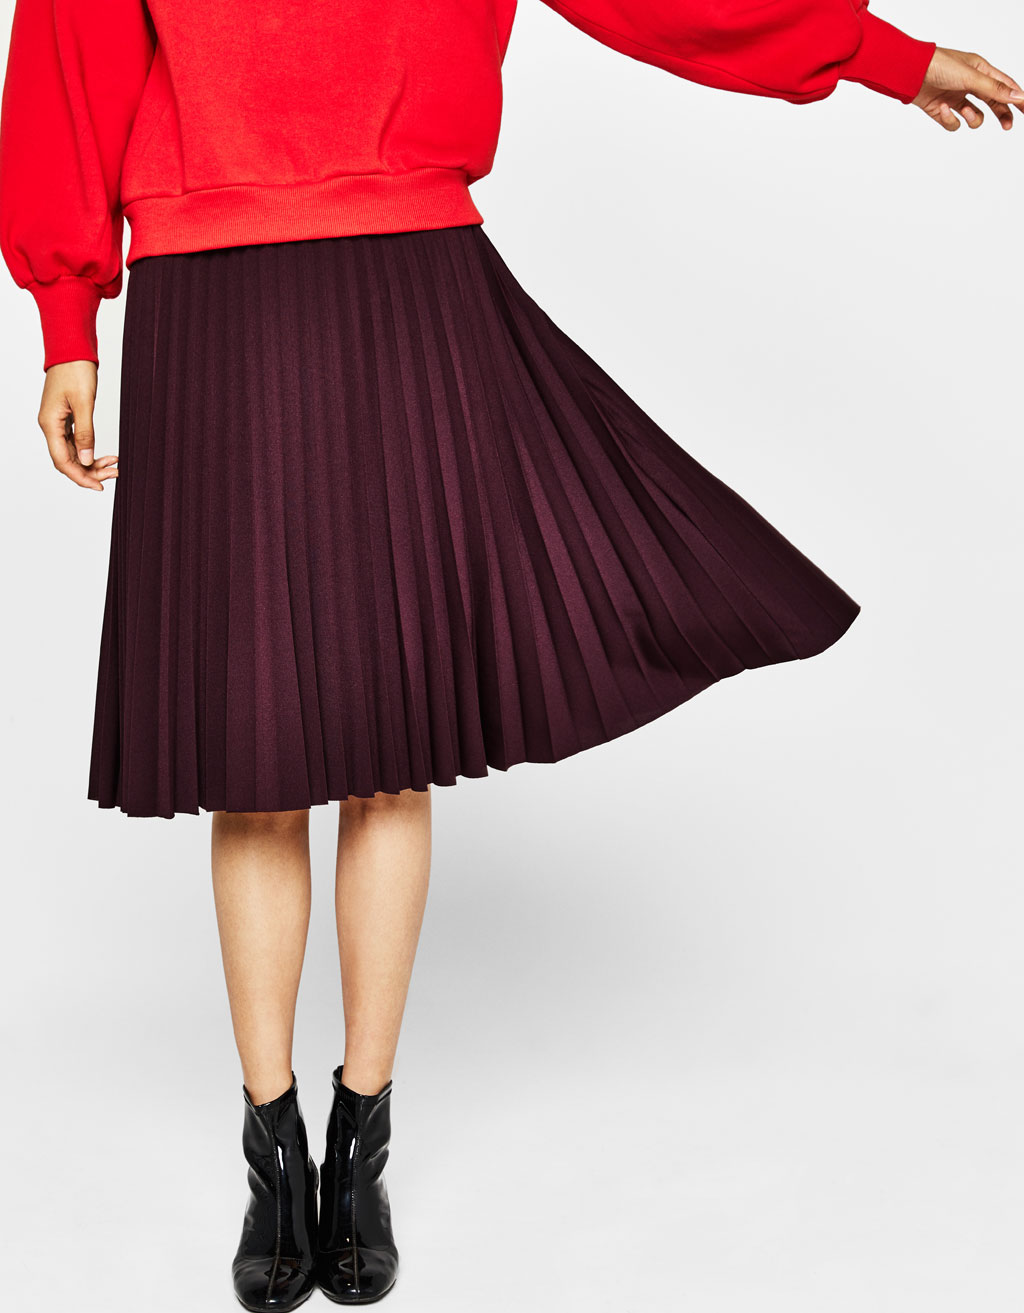 Women's Skirts - Pre-Autumn Collection 2017 | Bershka